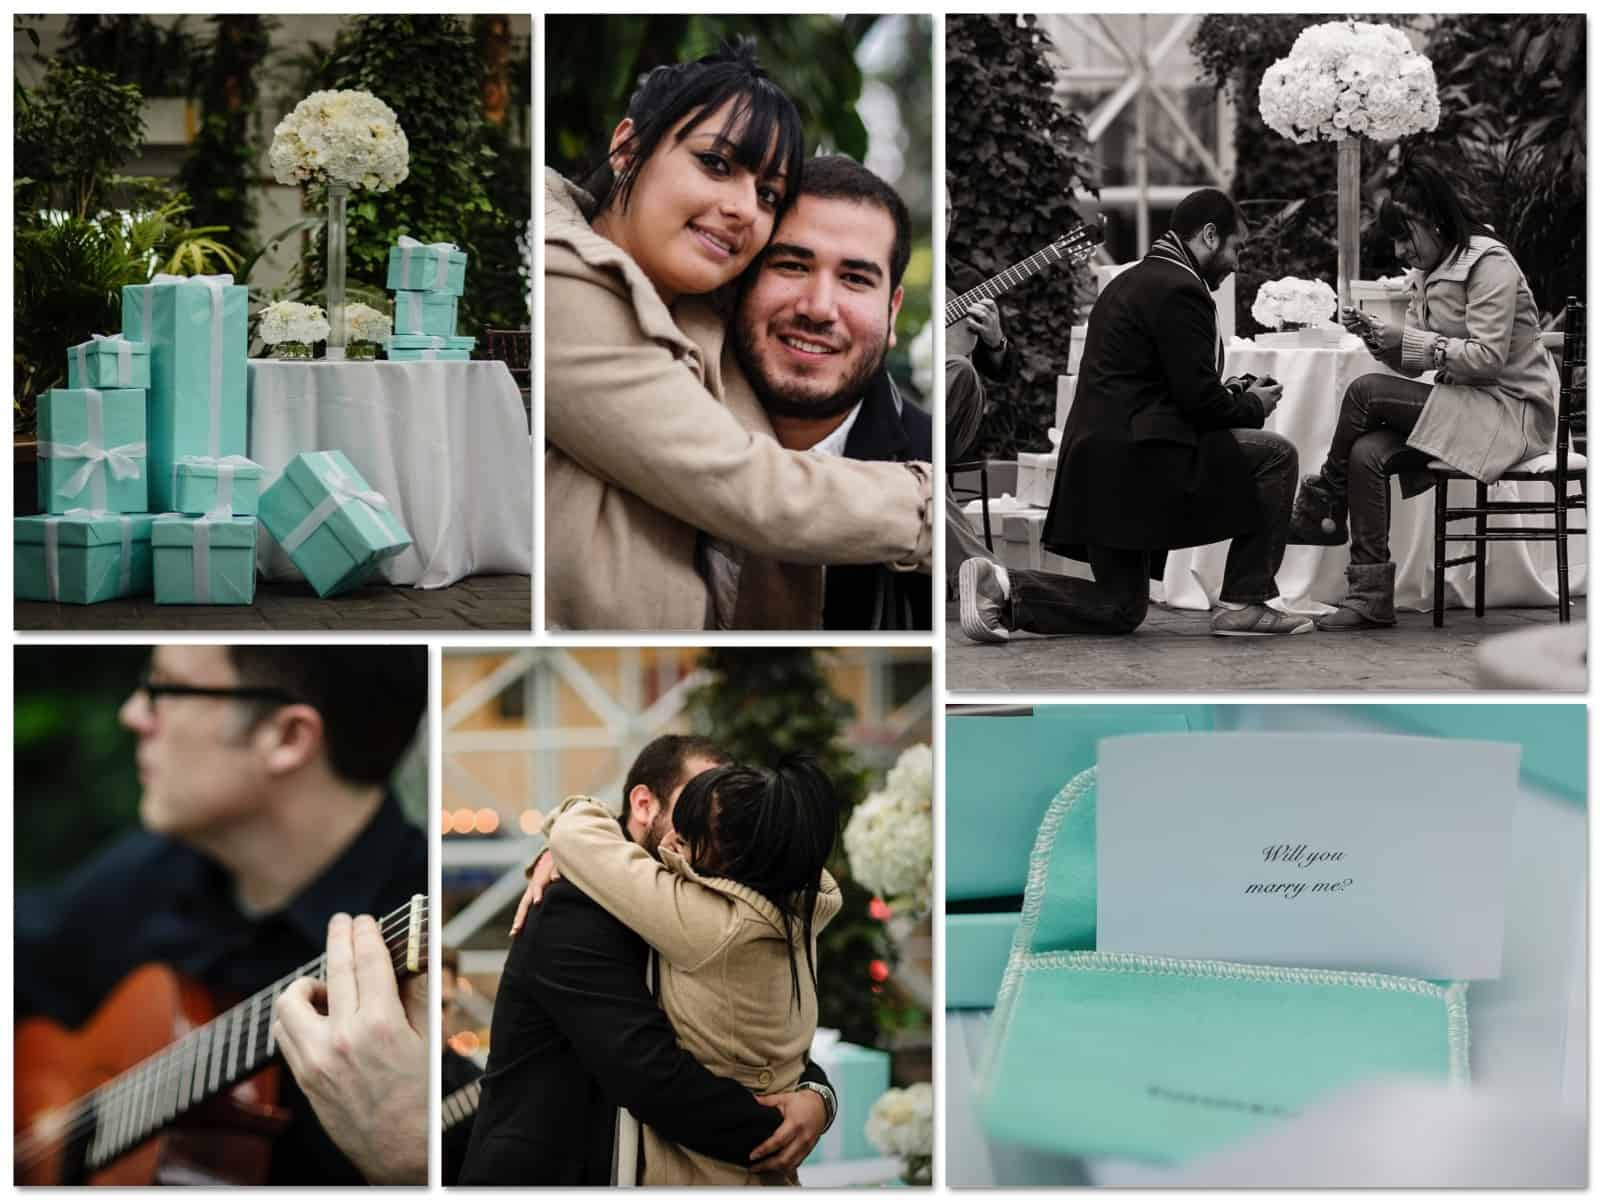 Romantic-Tiffany-Chicago-Proposal